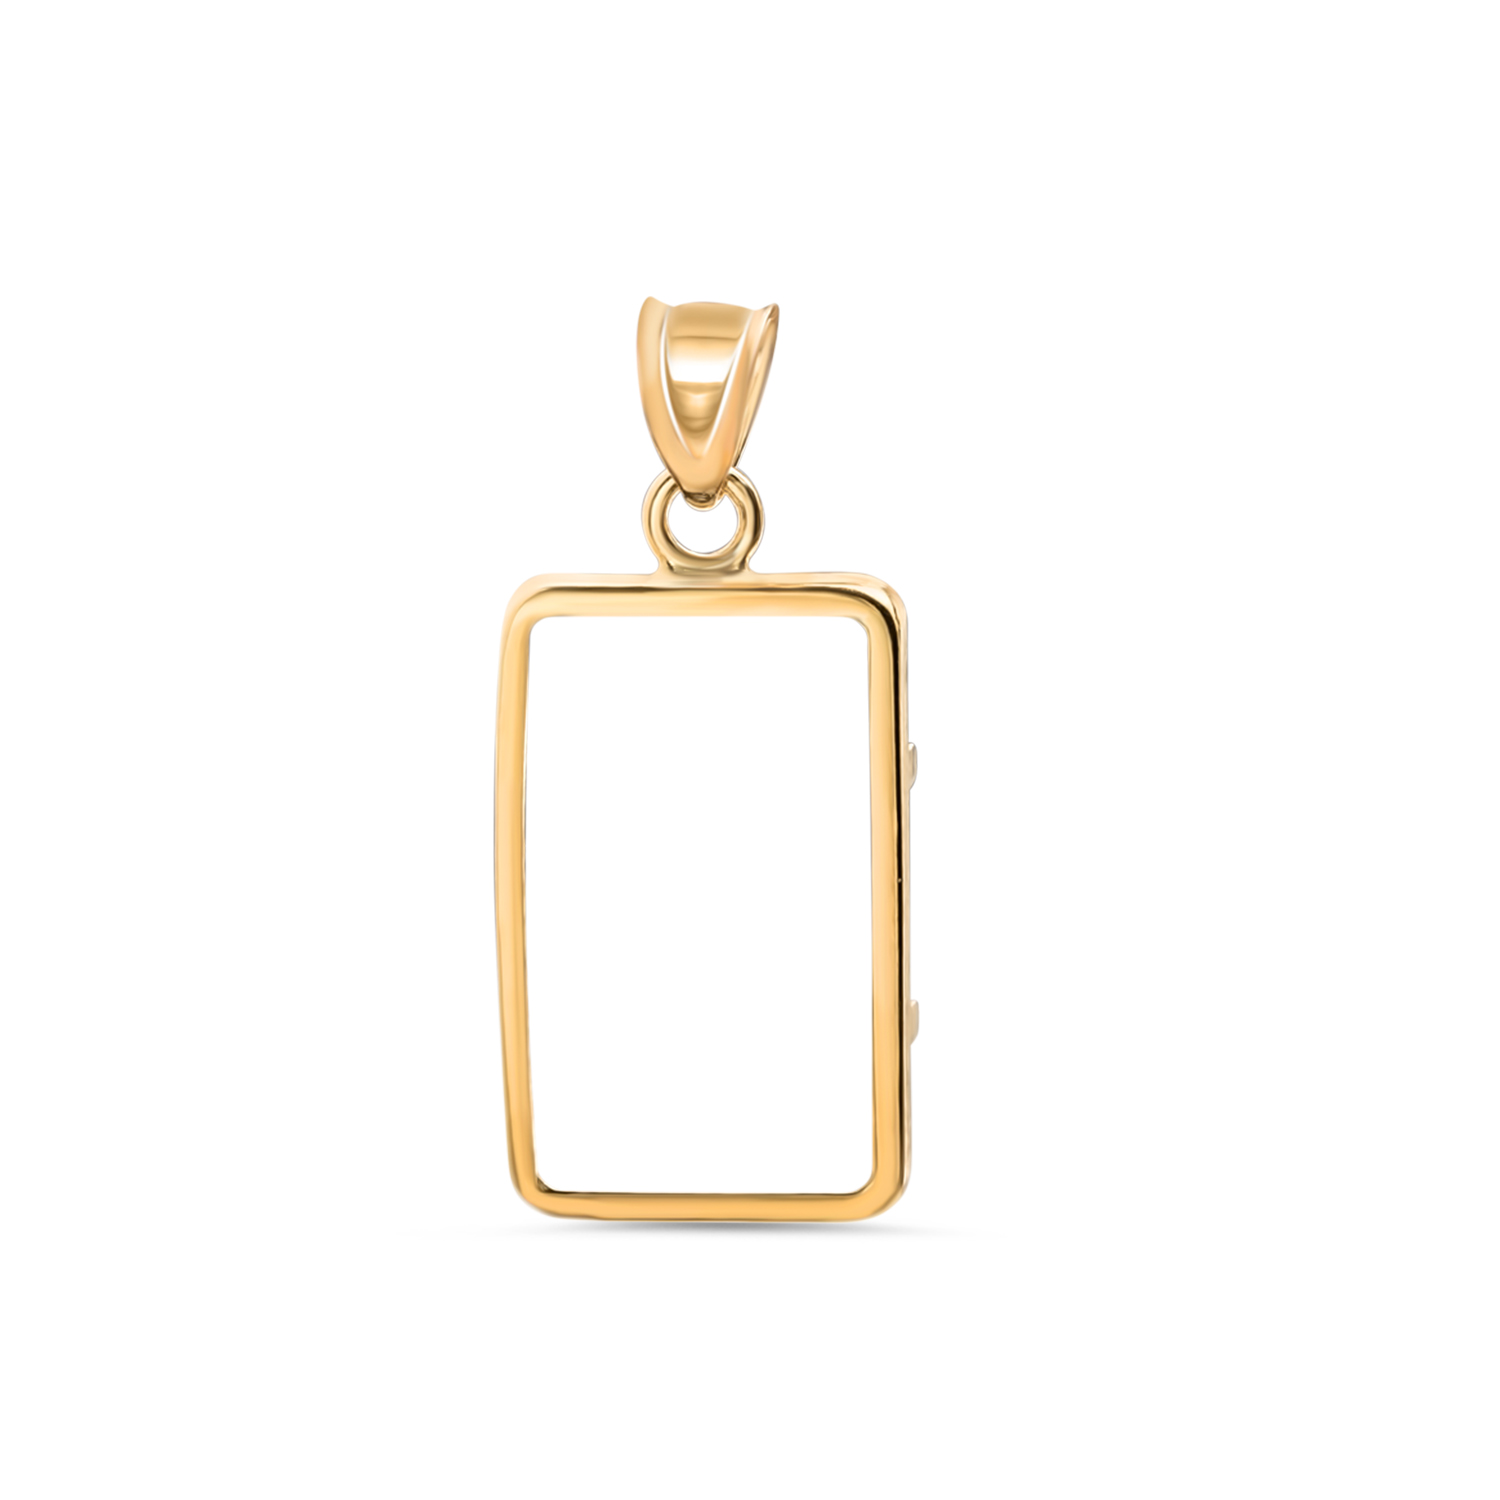 14K Gold Prong Plain-Front Bezel (1 gram CS Gold Bar)